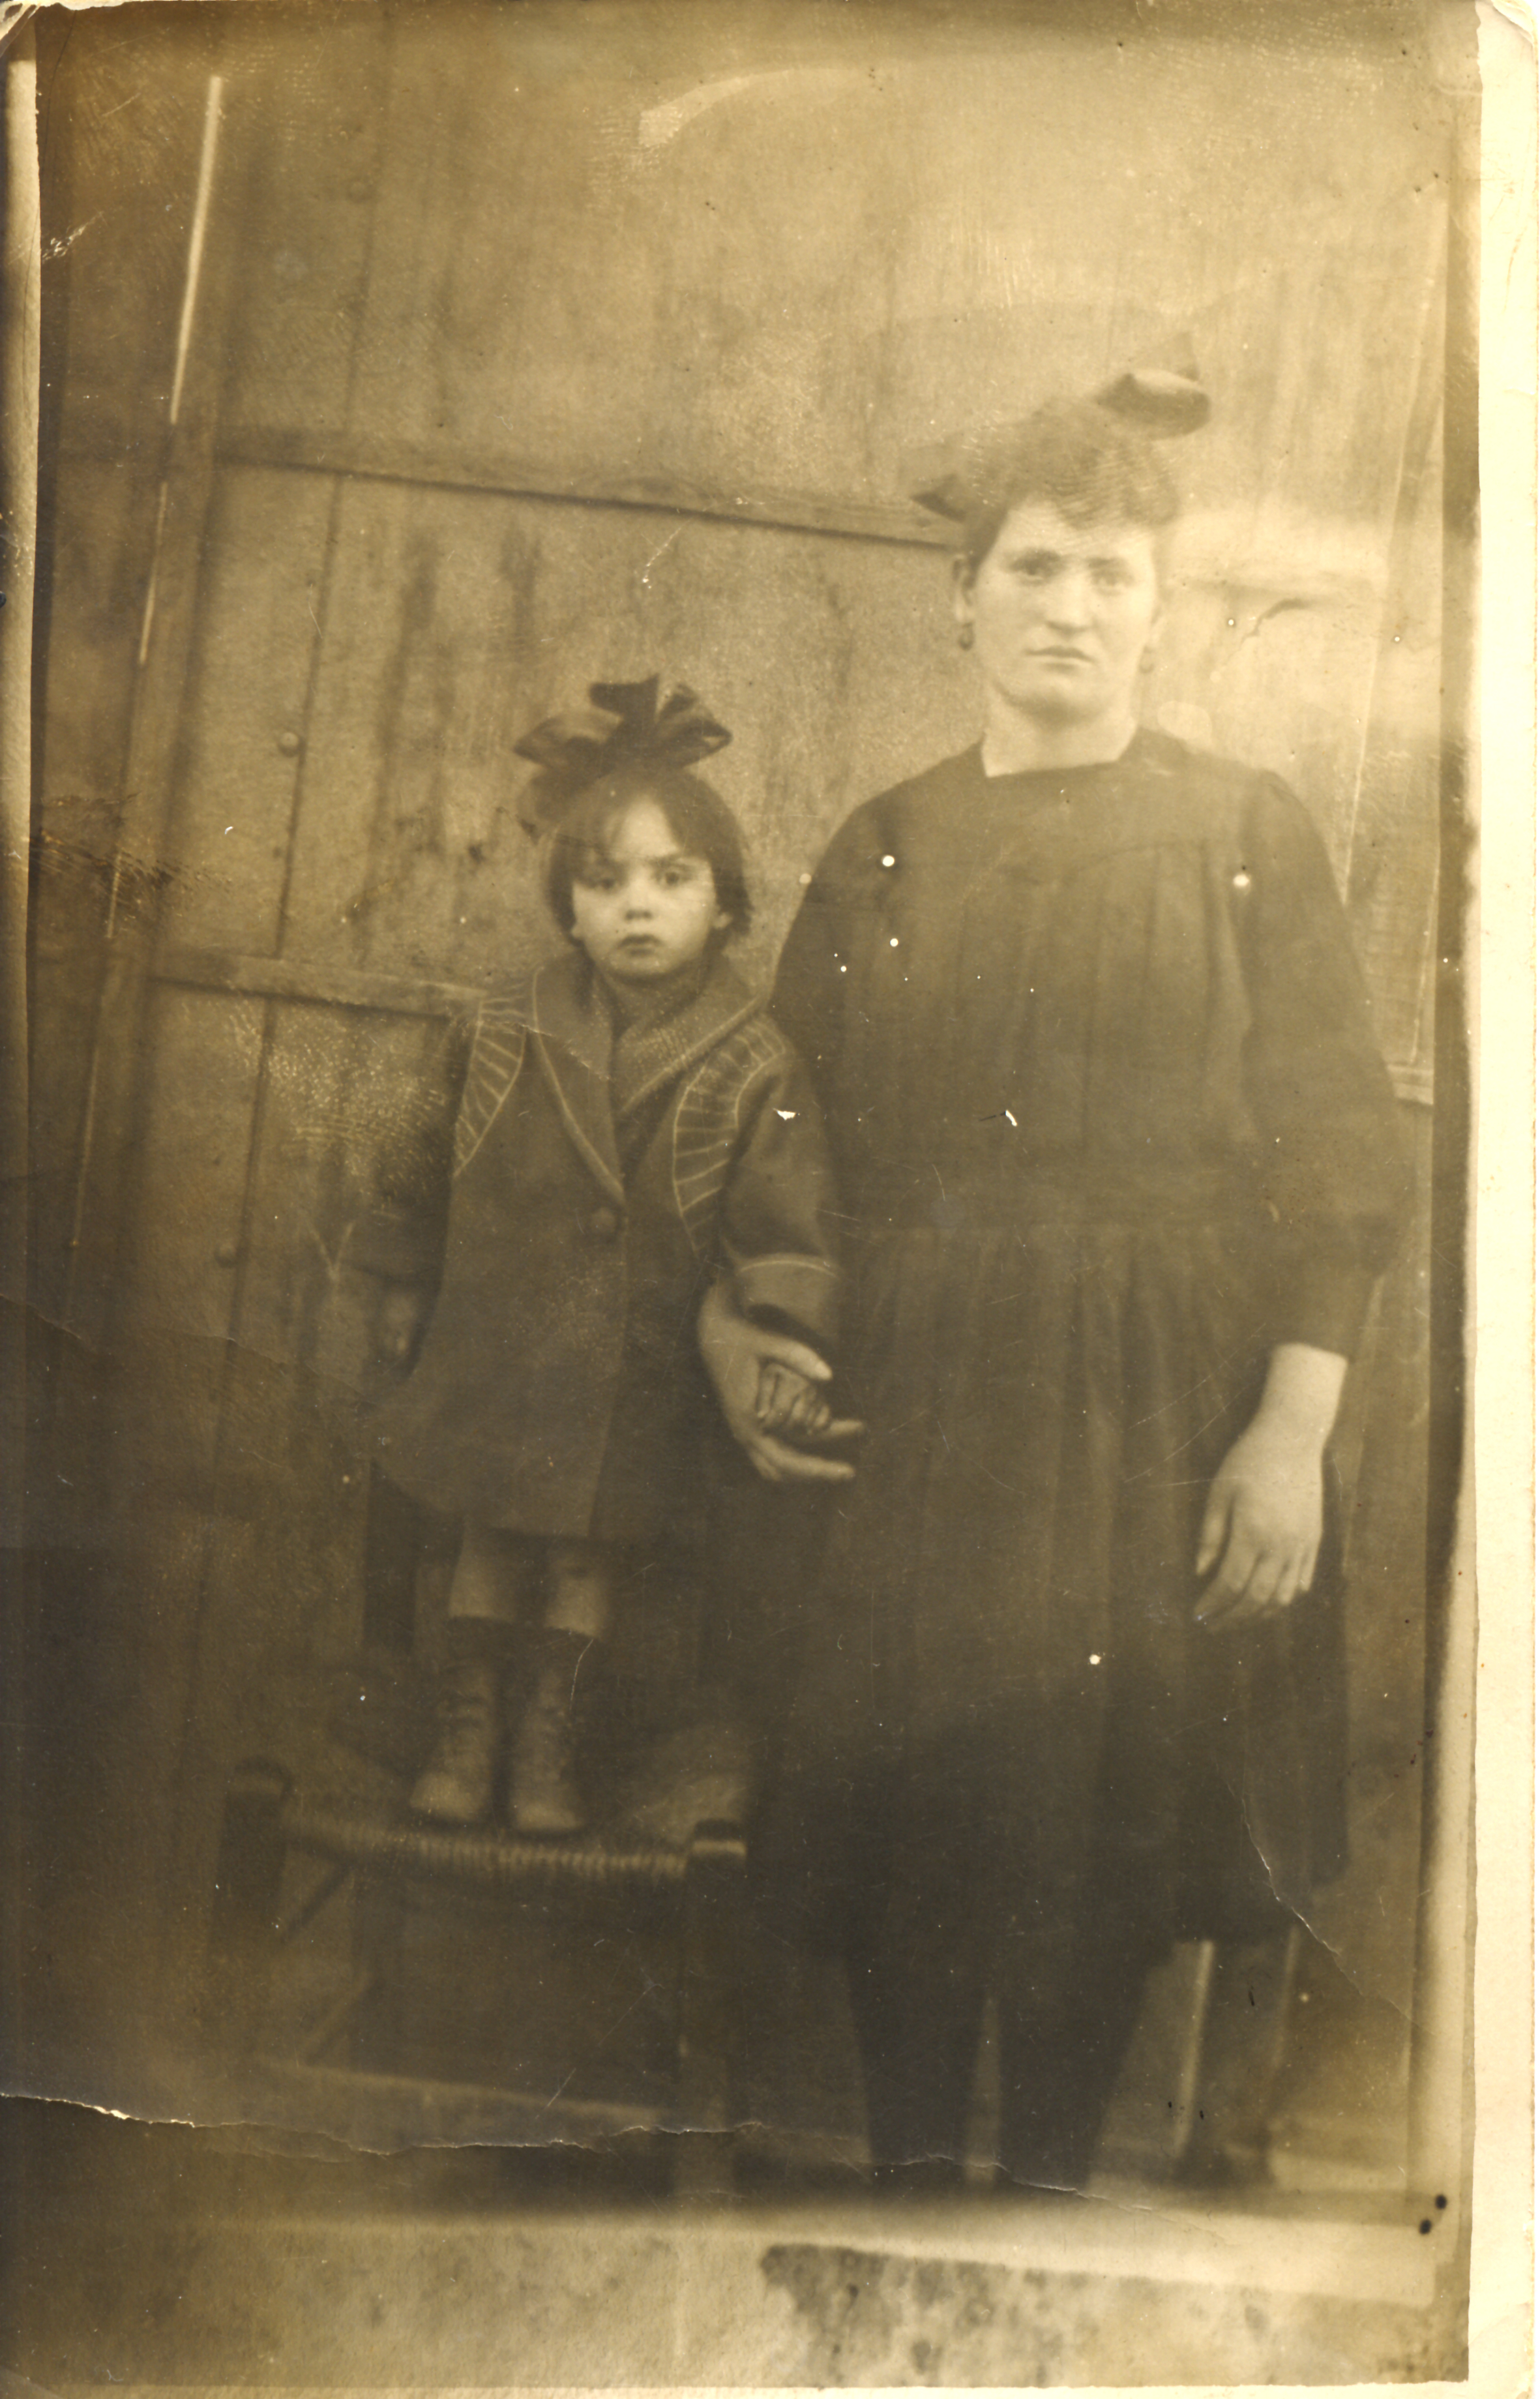 Renee Molho with her family's maid Sterina